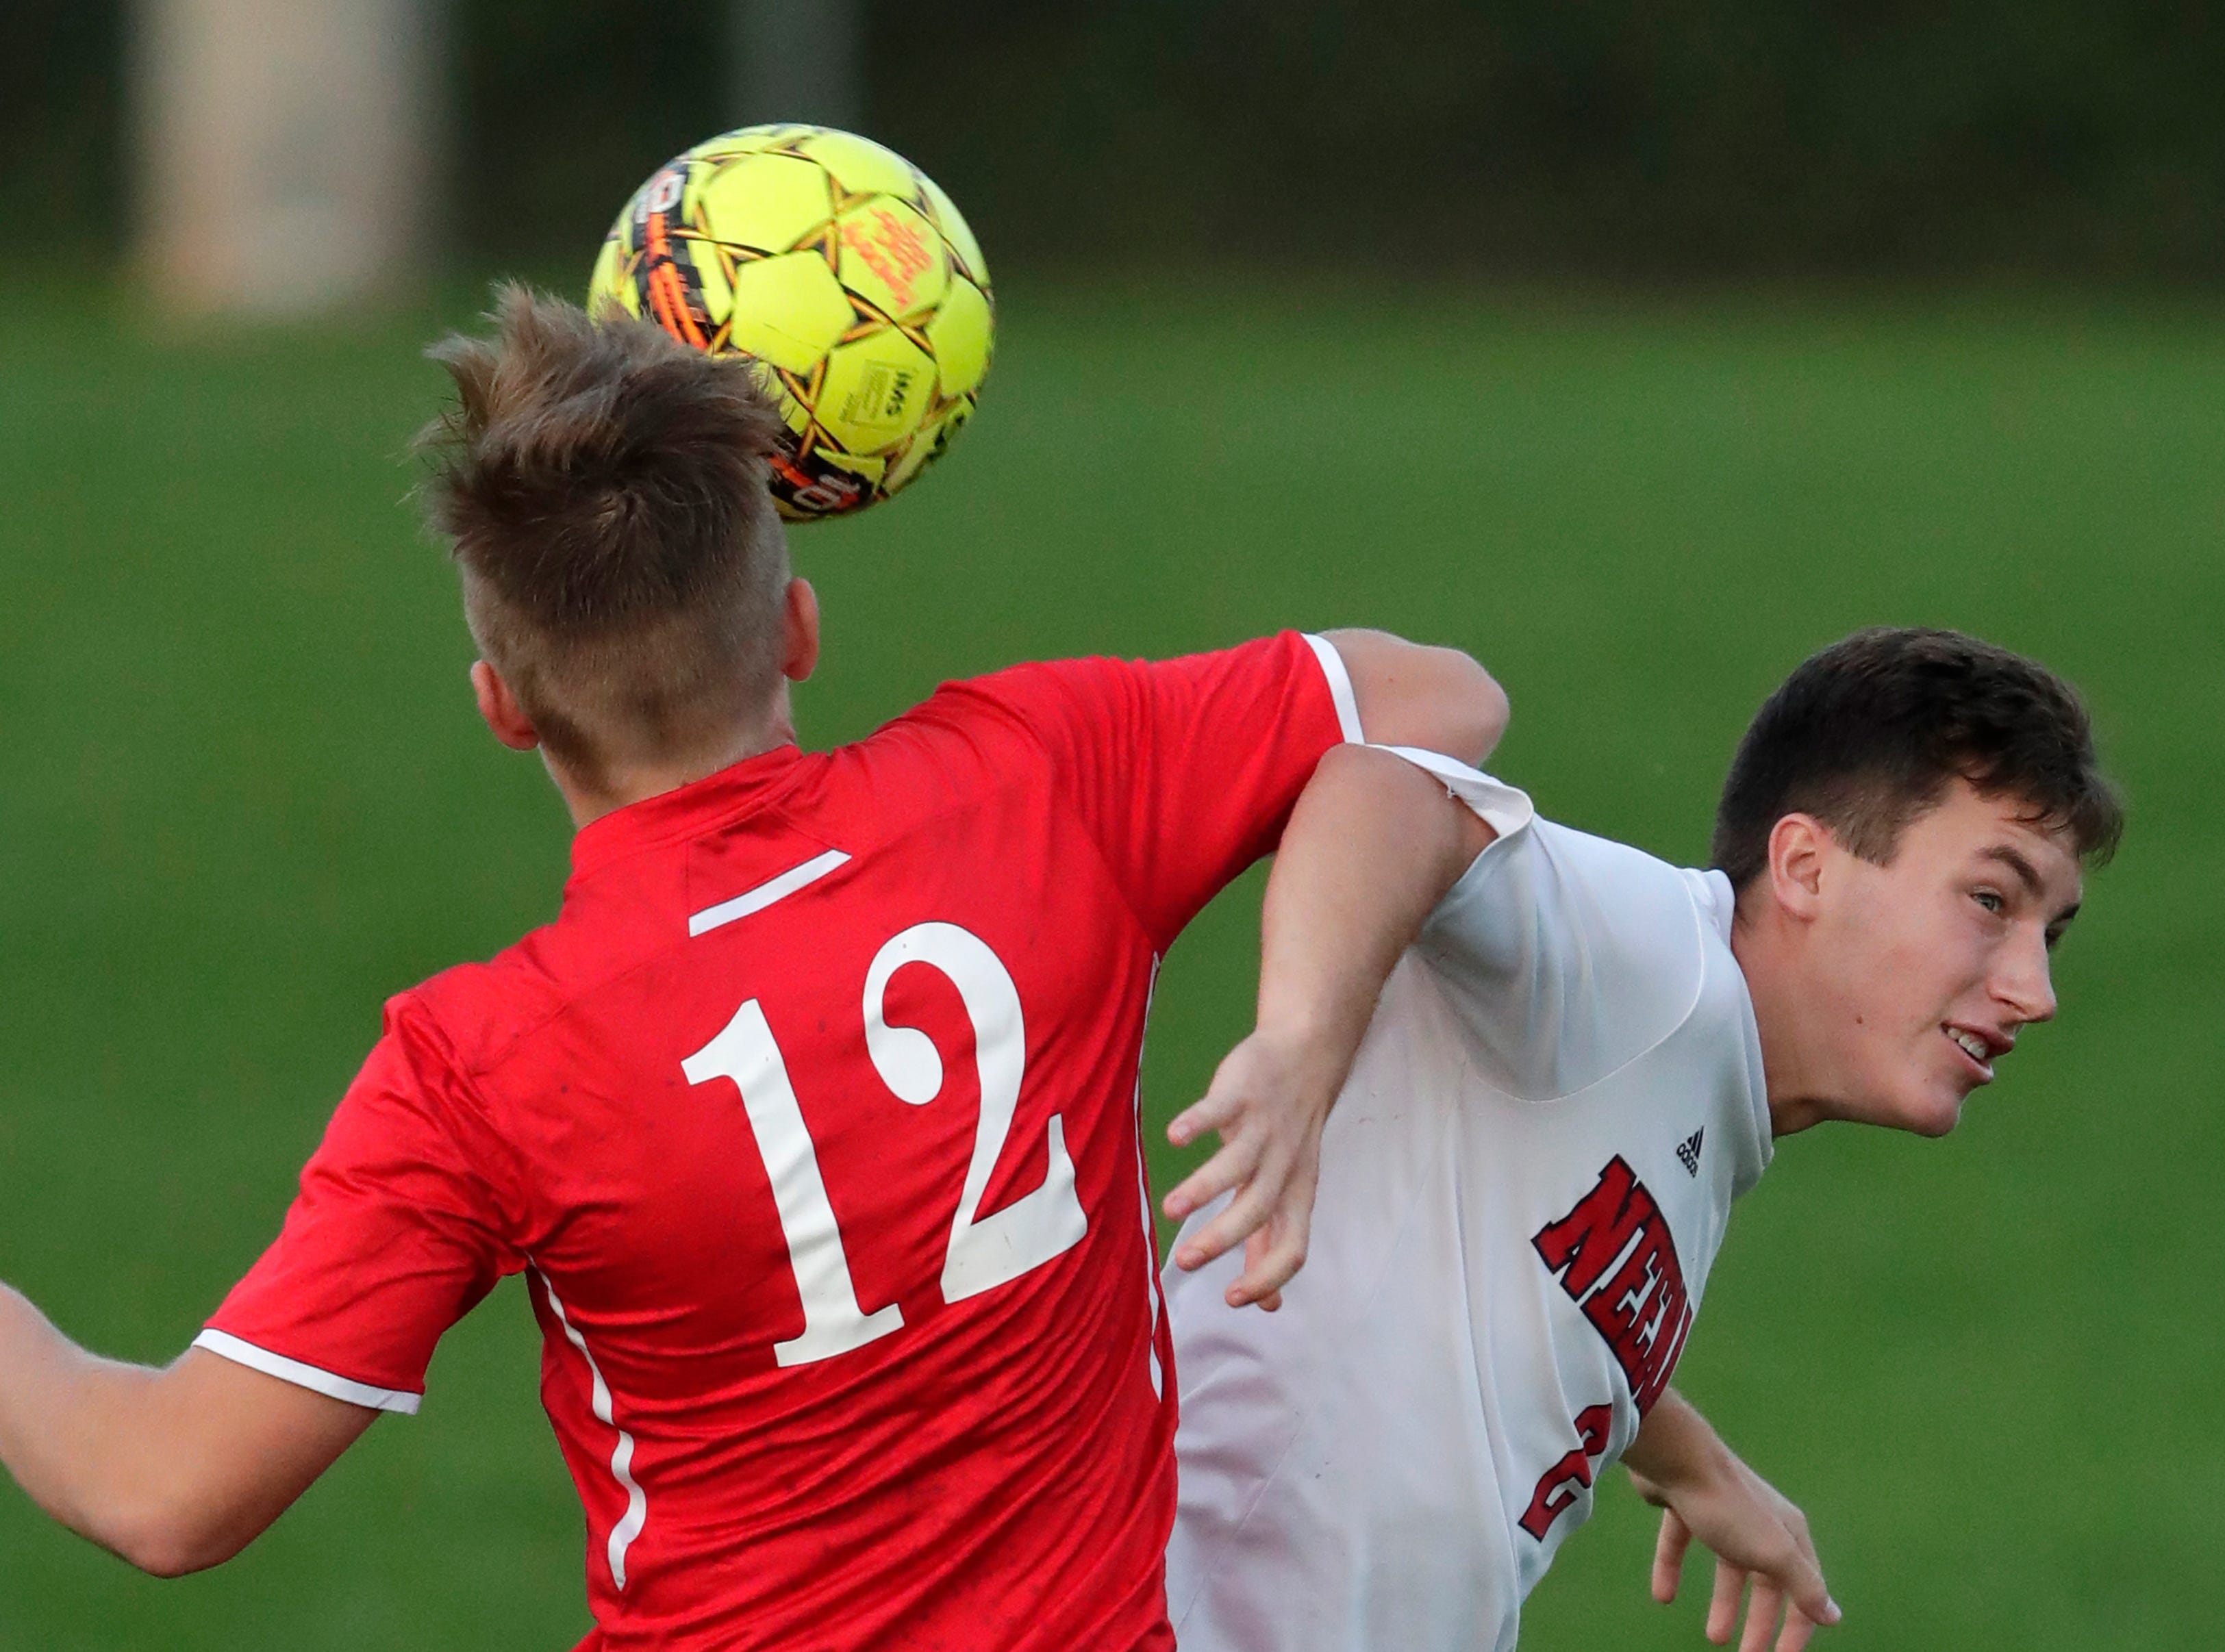 Kimberly High School's Nick Riffe (12) goes up against Neenah High School's Thomas Priest (2) during their boys soccer game Tuesday, Sept. 4, 2018, at Papermaker Field in Kimberly, Wis. 